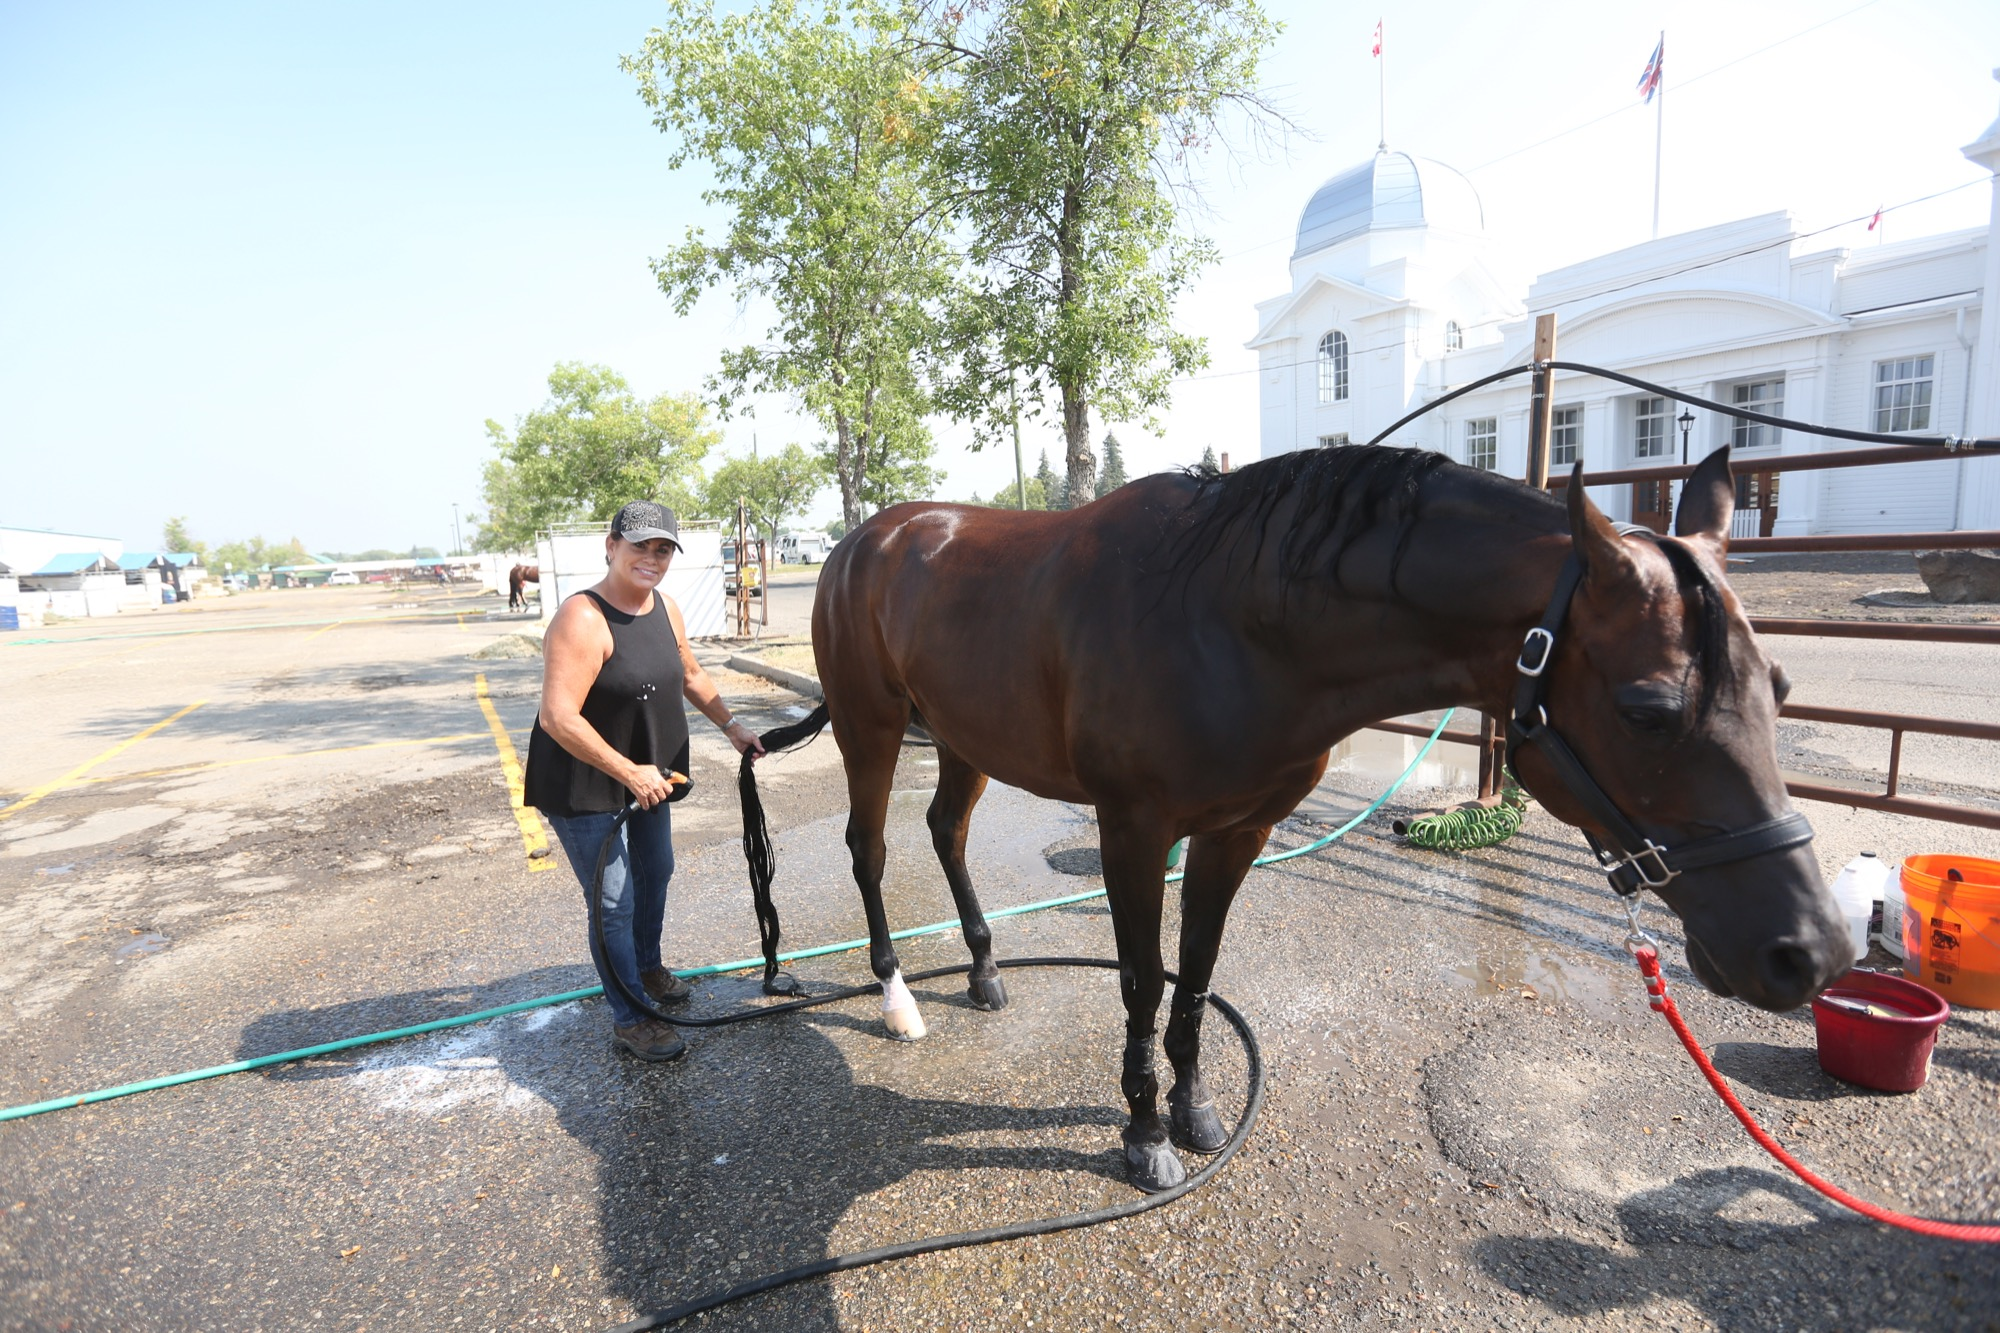 Duke the horse got a bath from owner Jennifer Magliulo outside the Keystone Centre on Sunday. It was all preparation for the 2018 Canadian National Arabian & Half-Arabian Championship Horse Show that kicked off on Sunday.